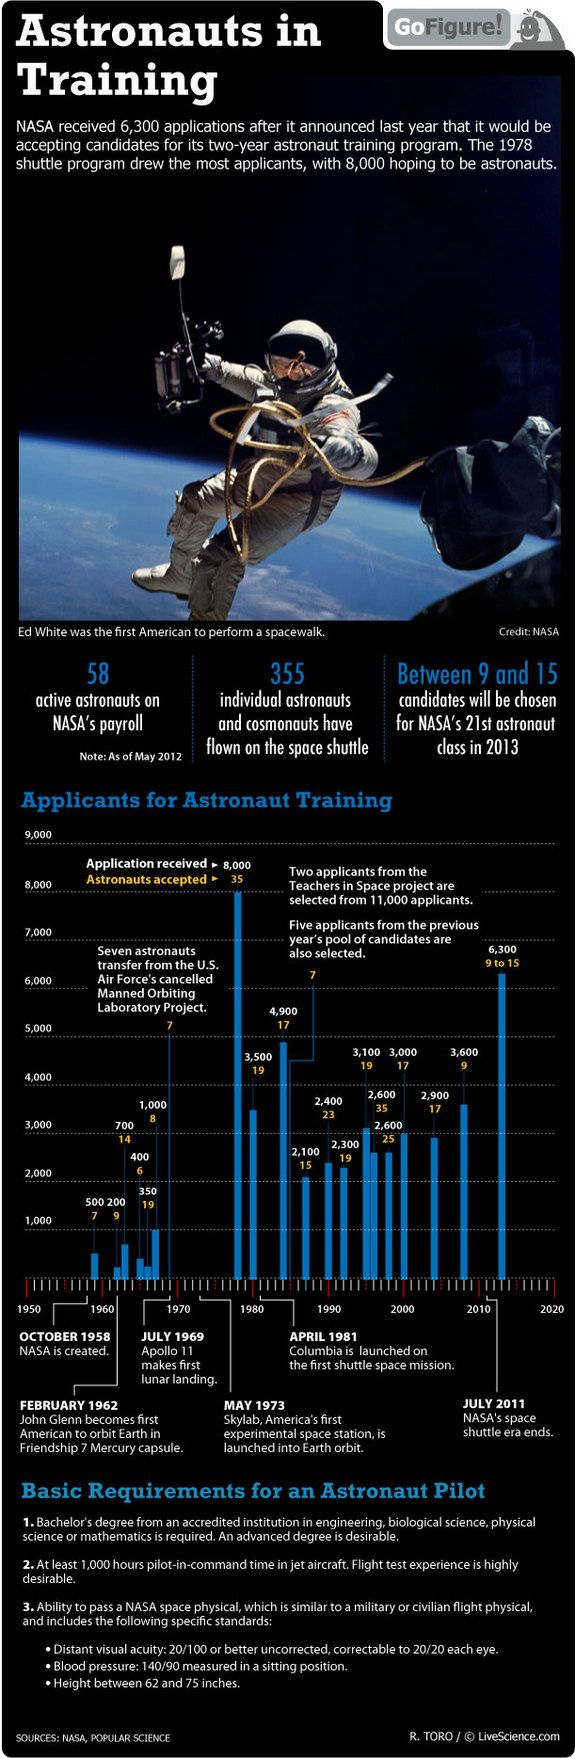 The 2013 group is second only to the 1978 batch of hopefuls. Only a tiny percentage of applicants are selected to become astronauts.